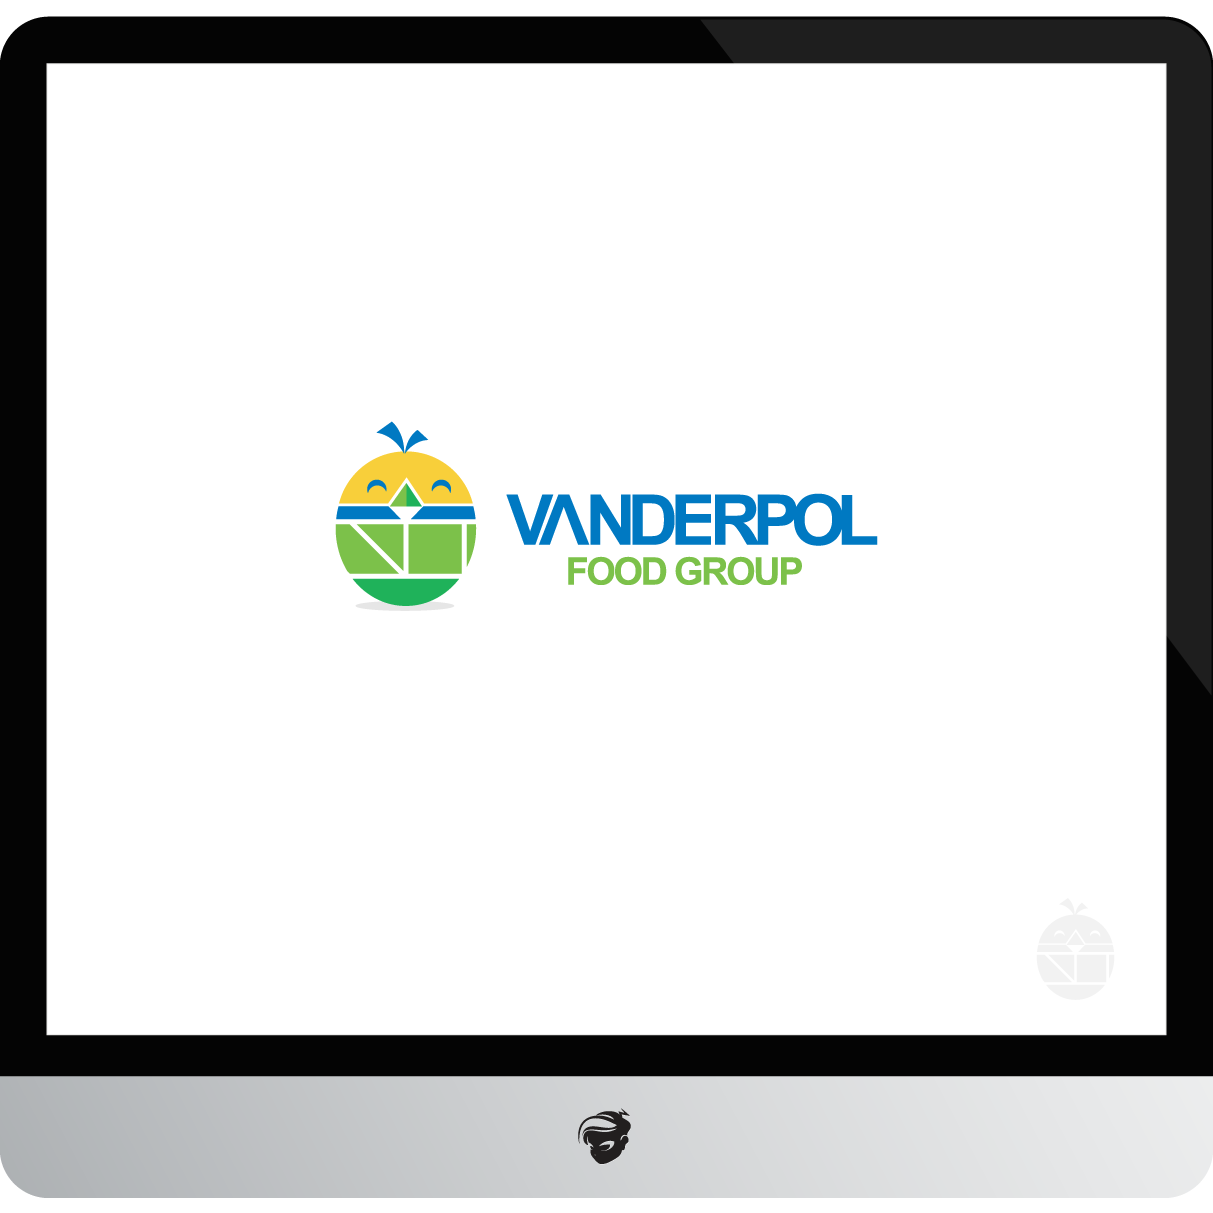 Logo Design by zesthar - Entry No. 11 in the Logo Design Contest Creative Logo Design for Vanderpol Food Group.